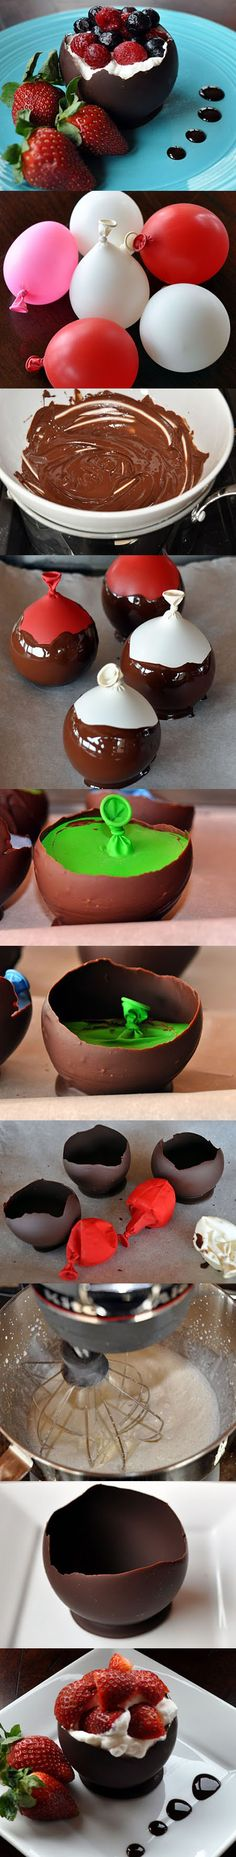 Chocolate bowl! Genius! *abr*